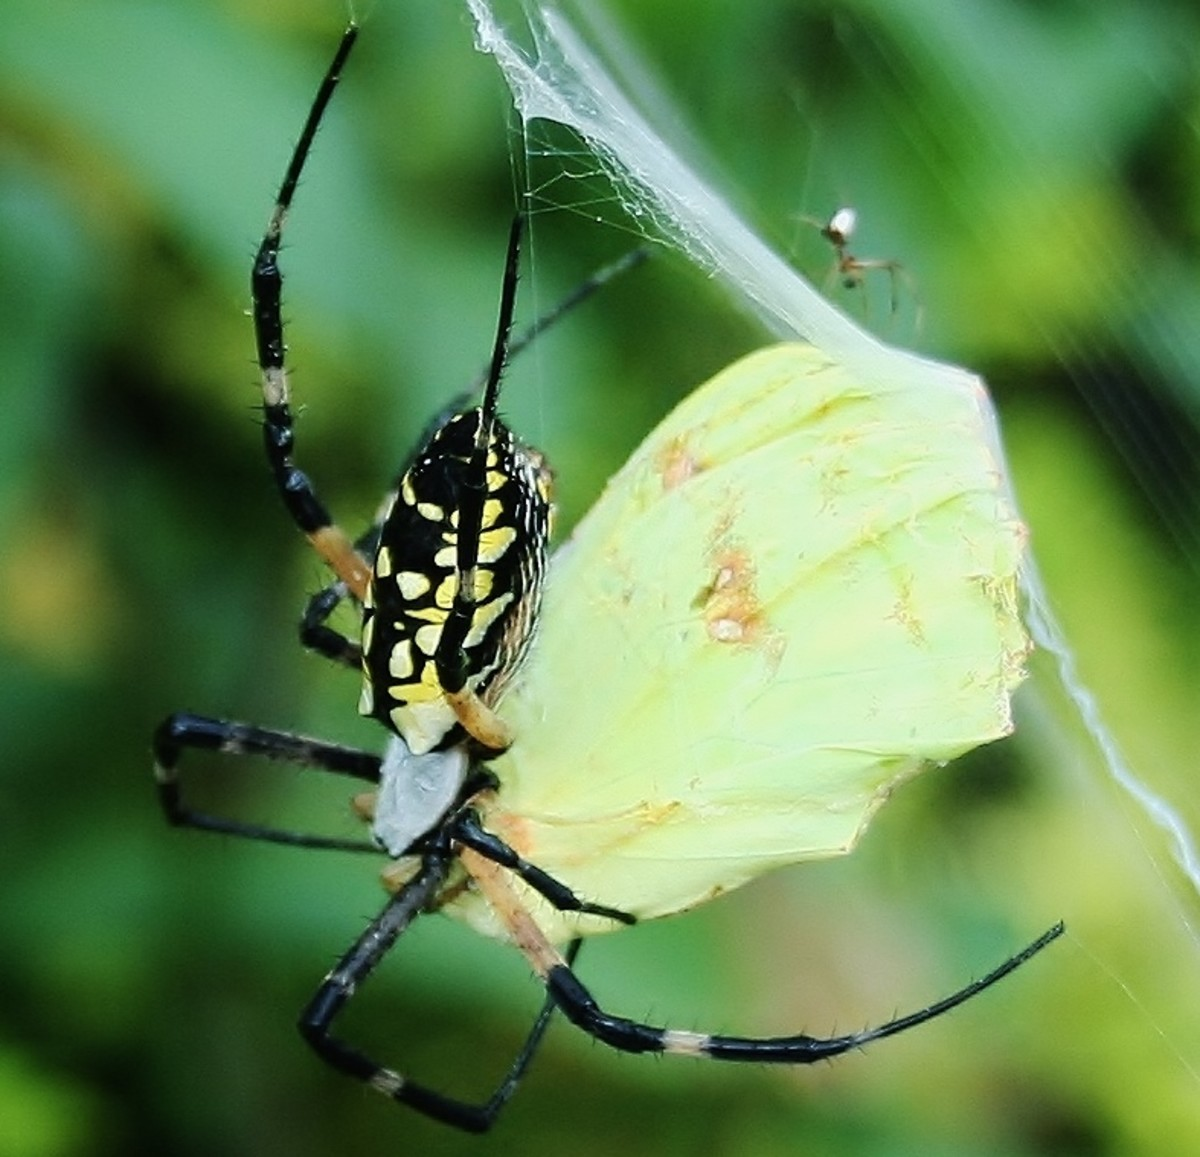 A yellow garden spider (Argiope aurantia) prepping a moth for dinner.